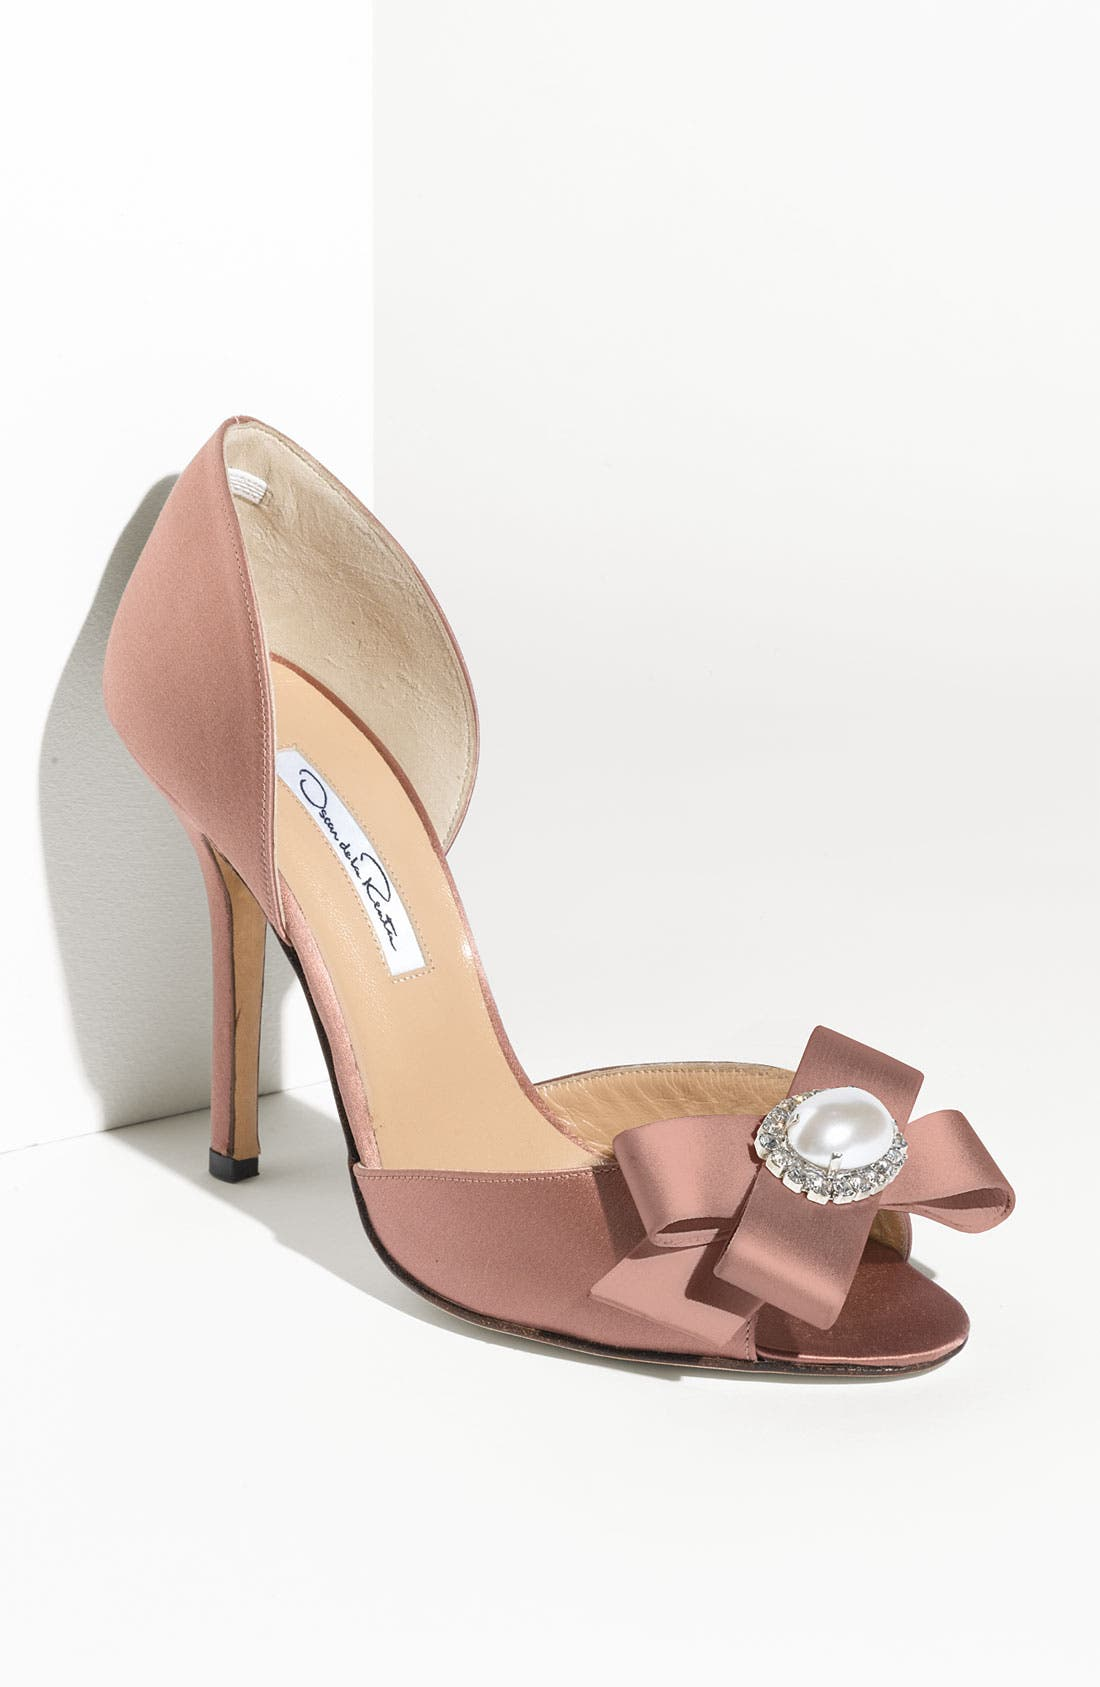 Alternate Image 1 Selected - Oscar de la Renta Satin Pump